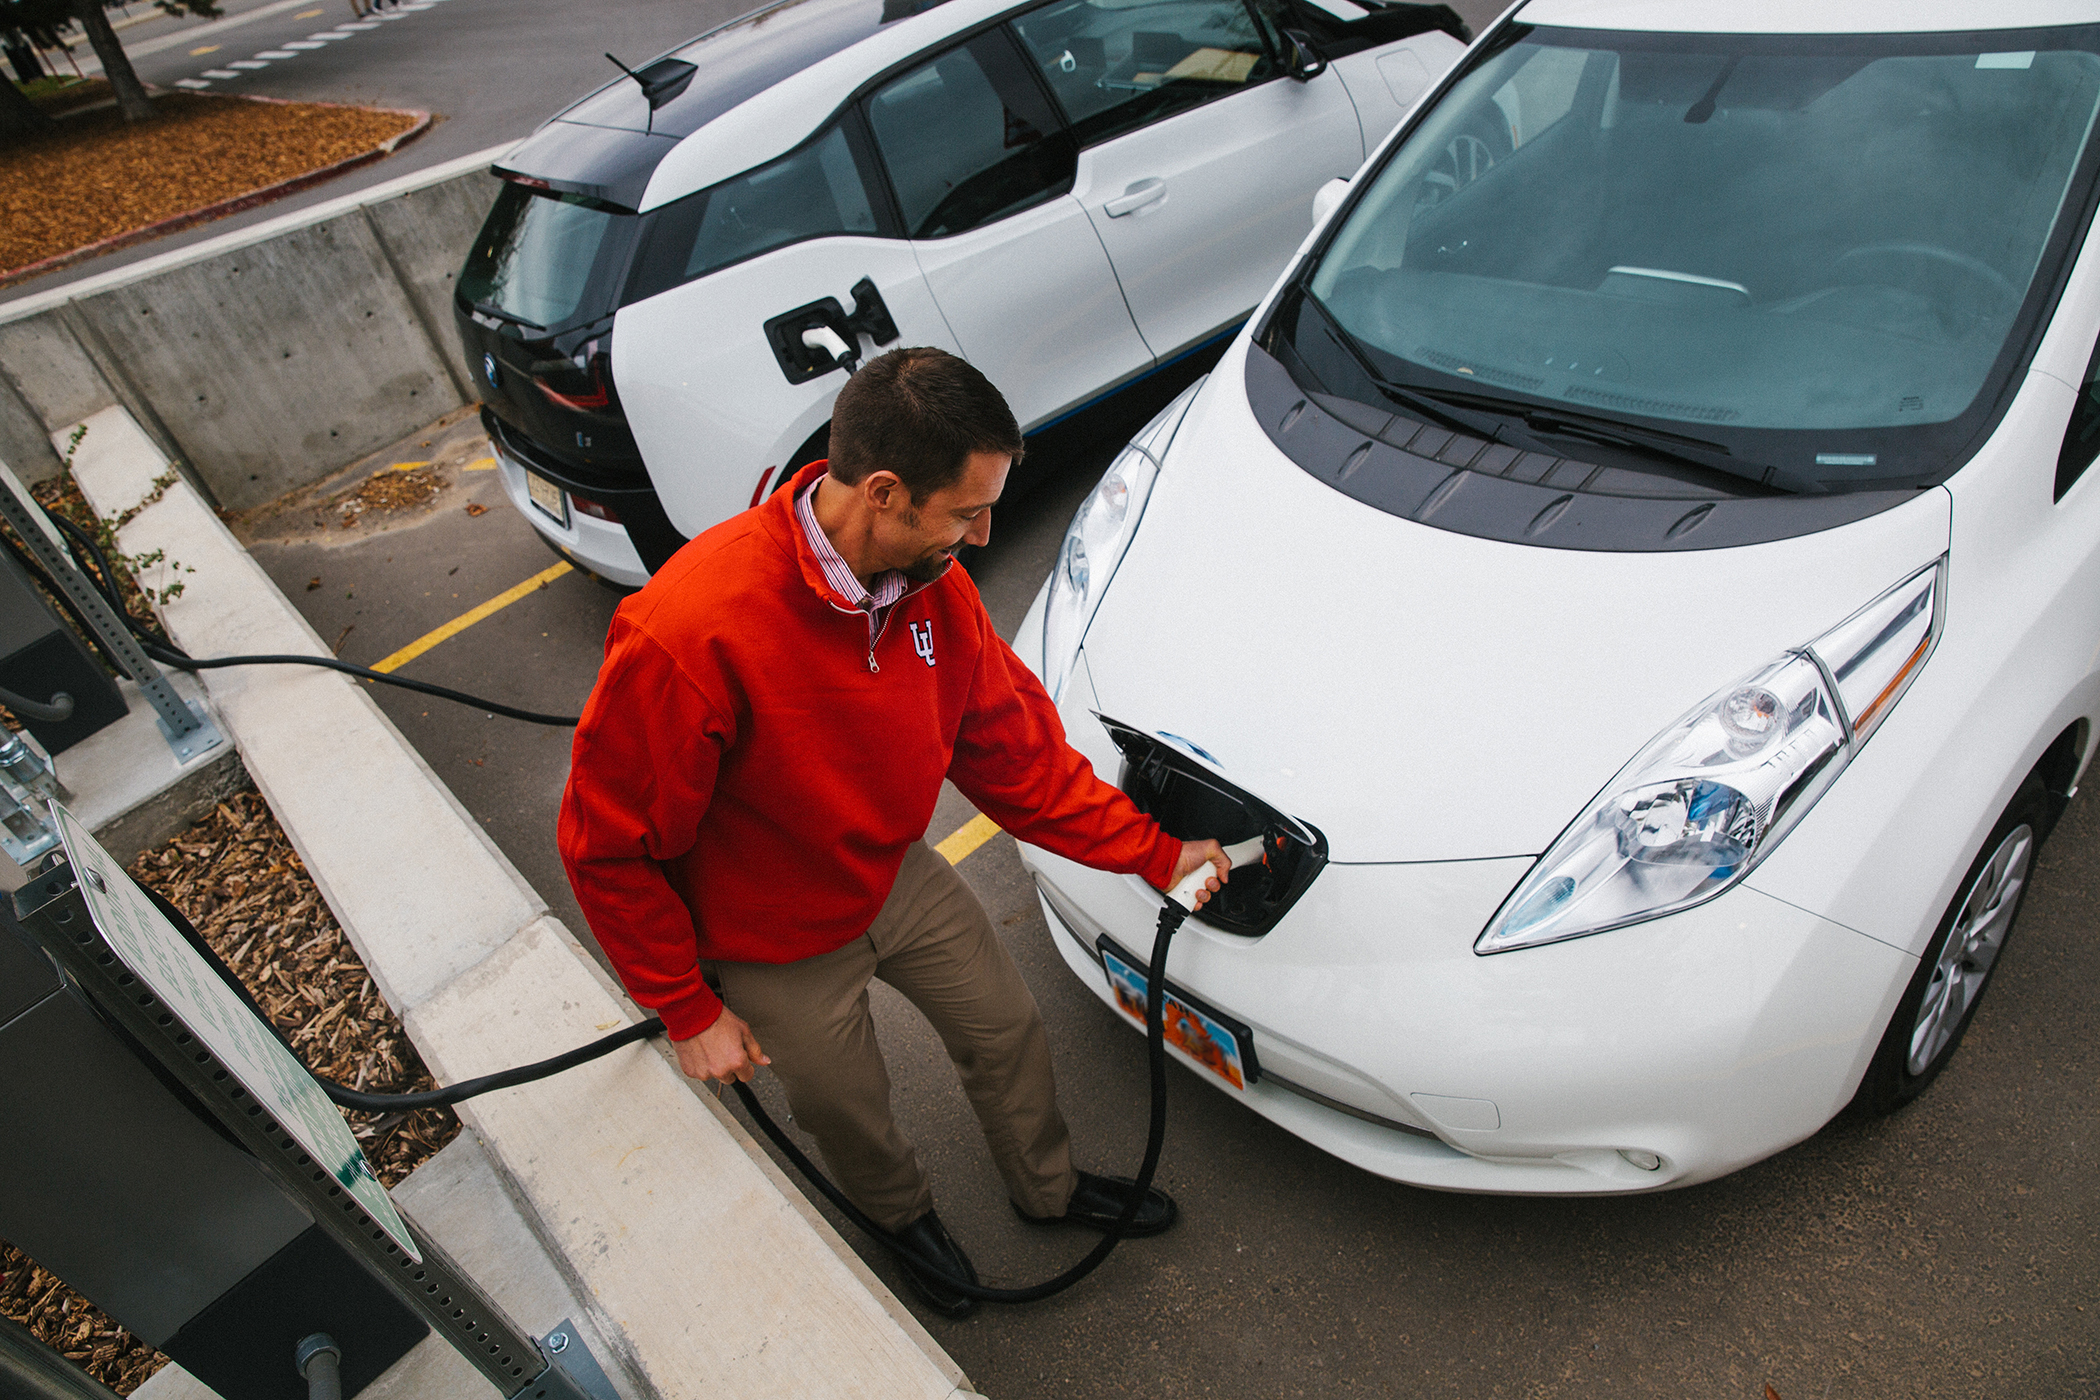 For a limited time, the University of Utah is sponsoring a community electric vehicle purchase program.